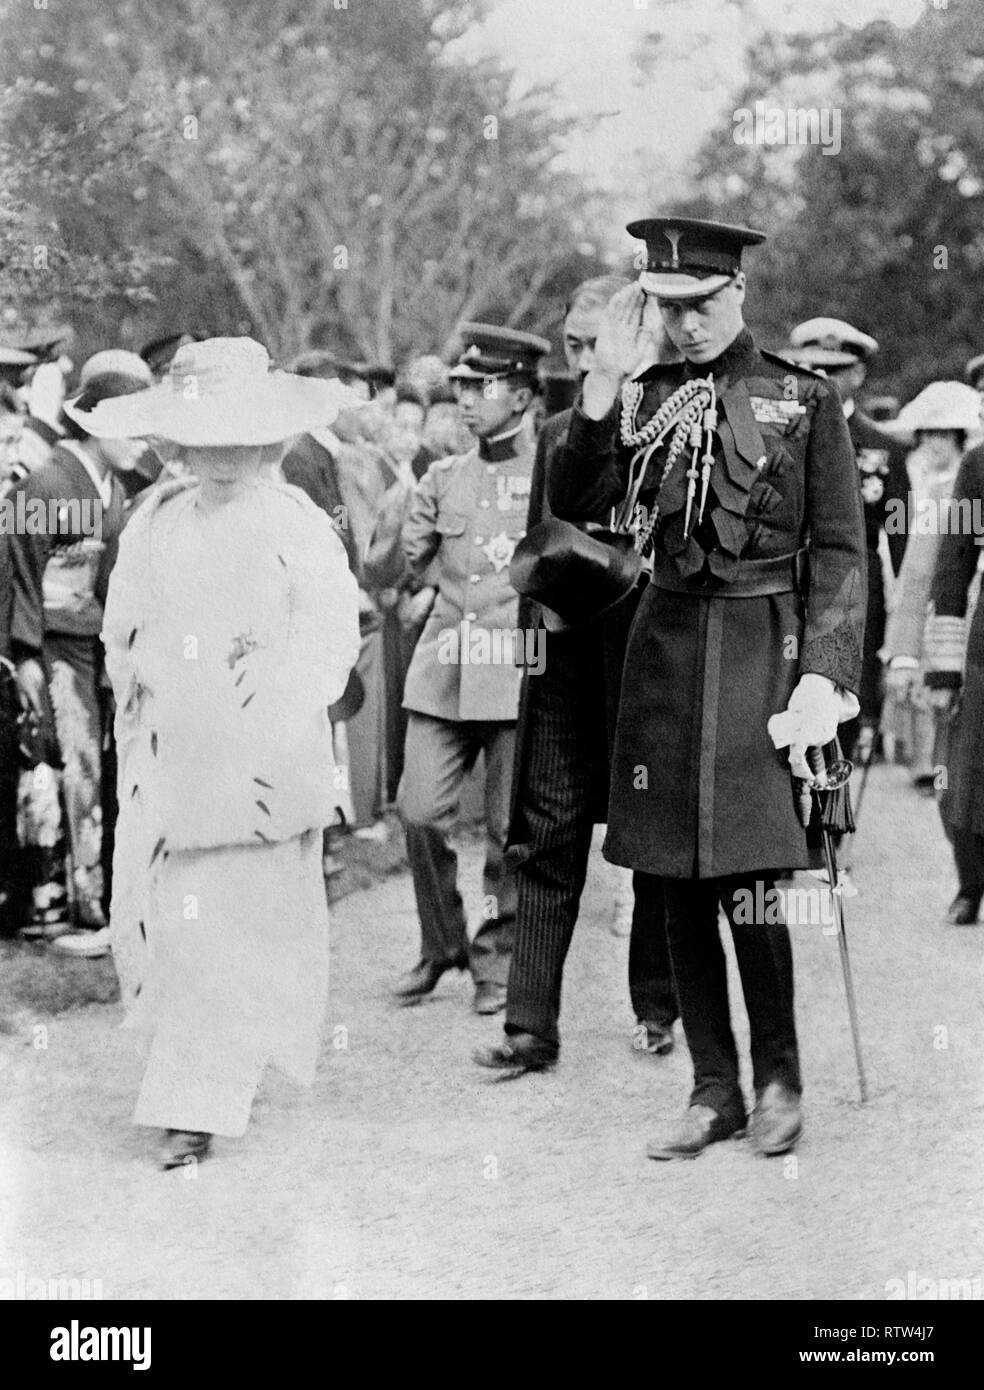 Prince Edward, The Prince of Wales in uniform saluting with the empress teimei and prince regent hirohito of japan - Stock Image